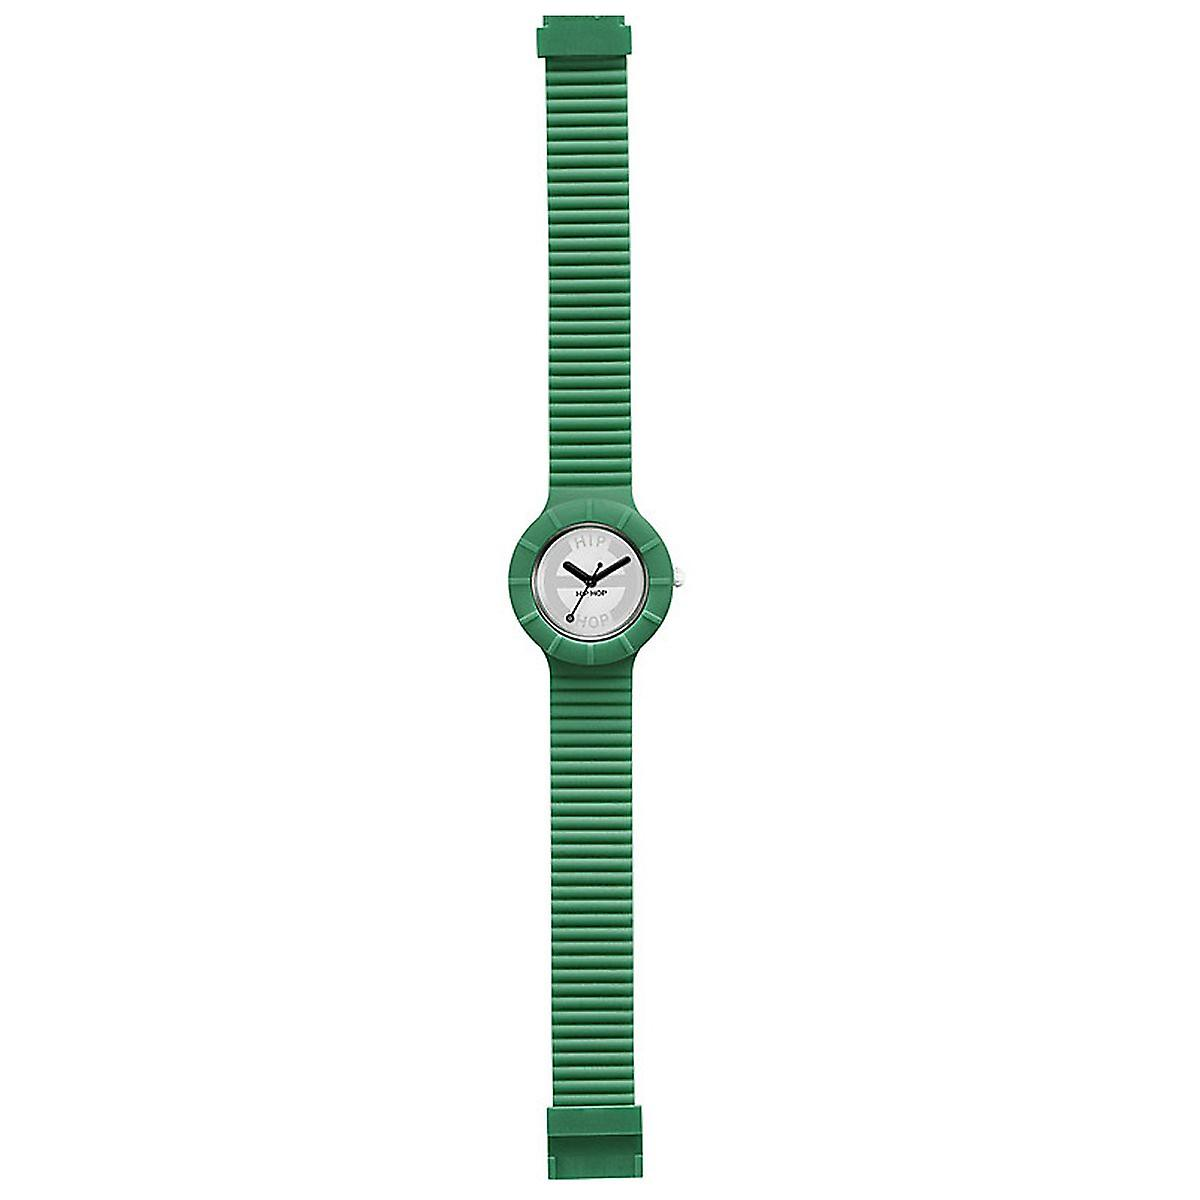 Hip hop watch wrist watch silicone watch hero small green HWU0235